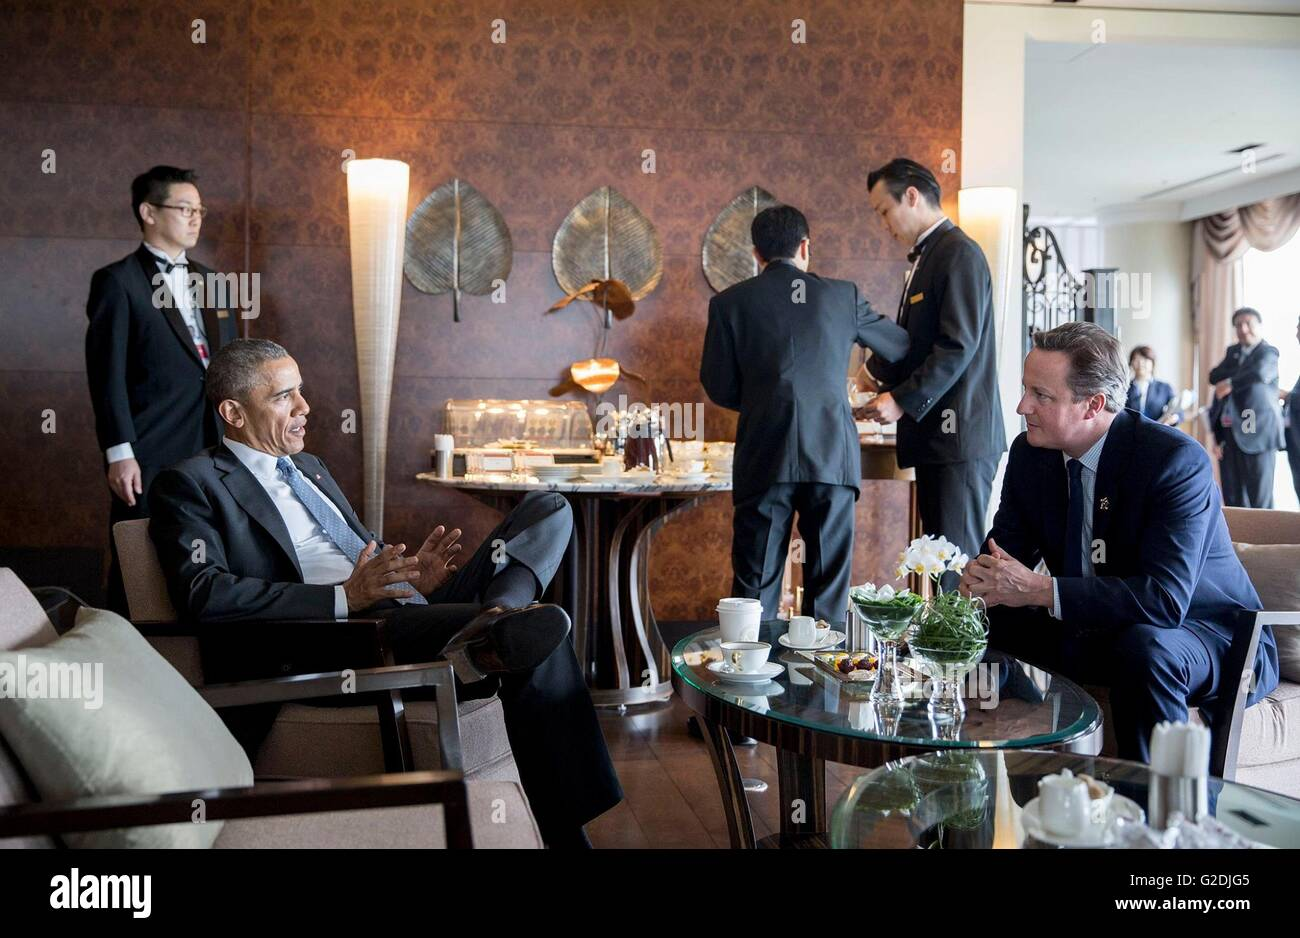 U.S President Barack Obama talks with British Prime Minister David Cameron at the Bay Suites during a coffee break between work sessions at the G7 Summit May 26, 2016 in Shima, Mie Prefecture, Japan. Stock Photo